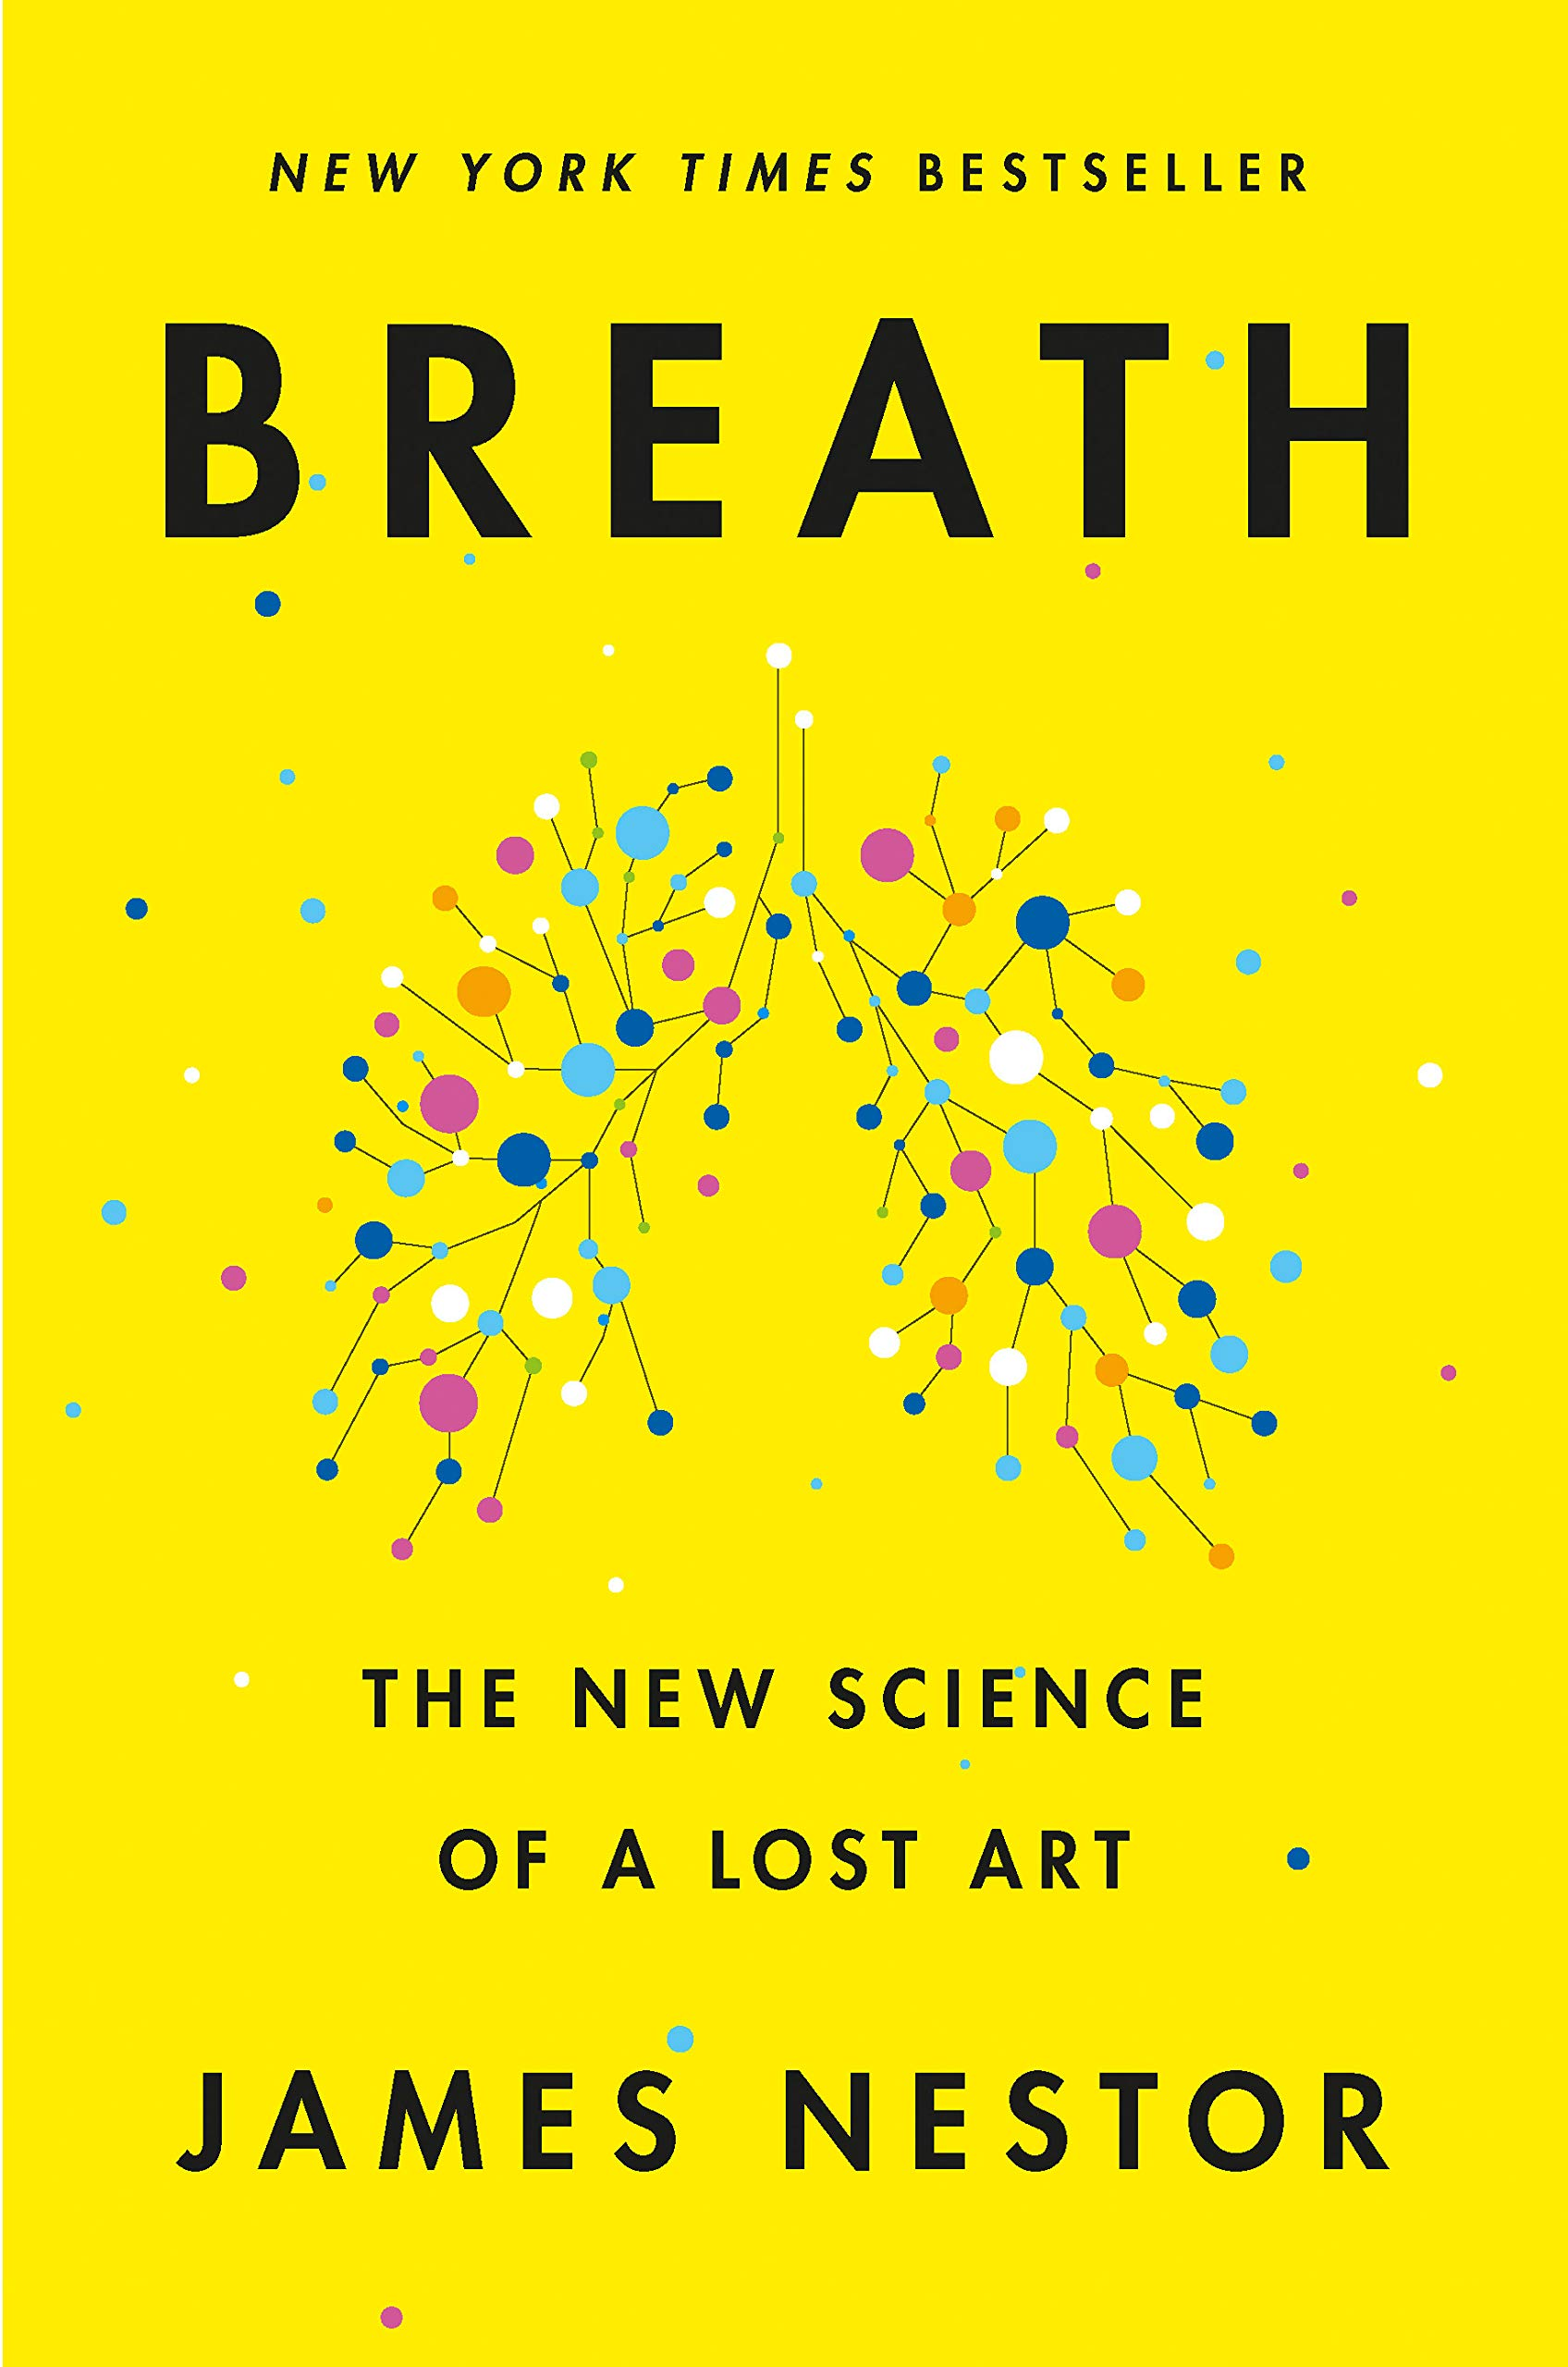 Cover of Breath by James Nestor